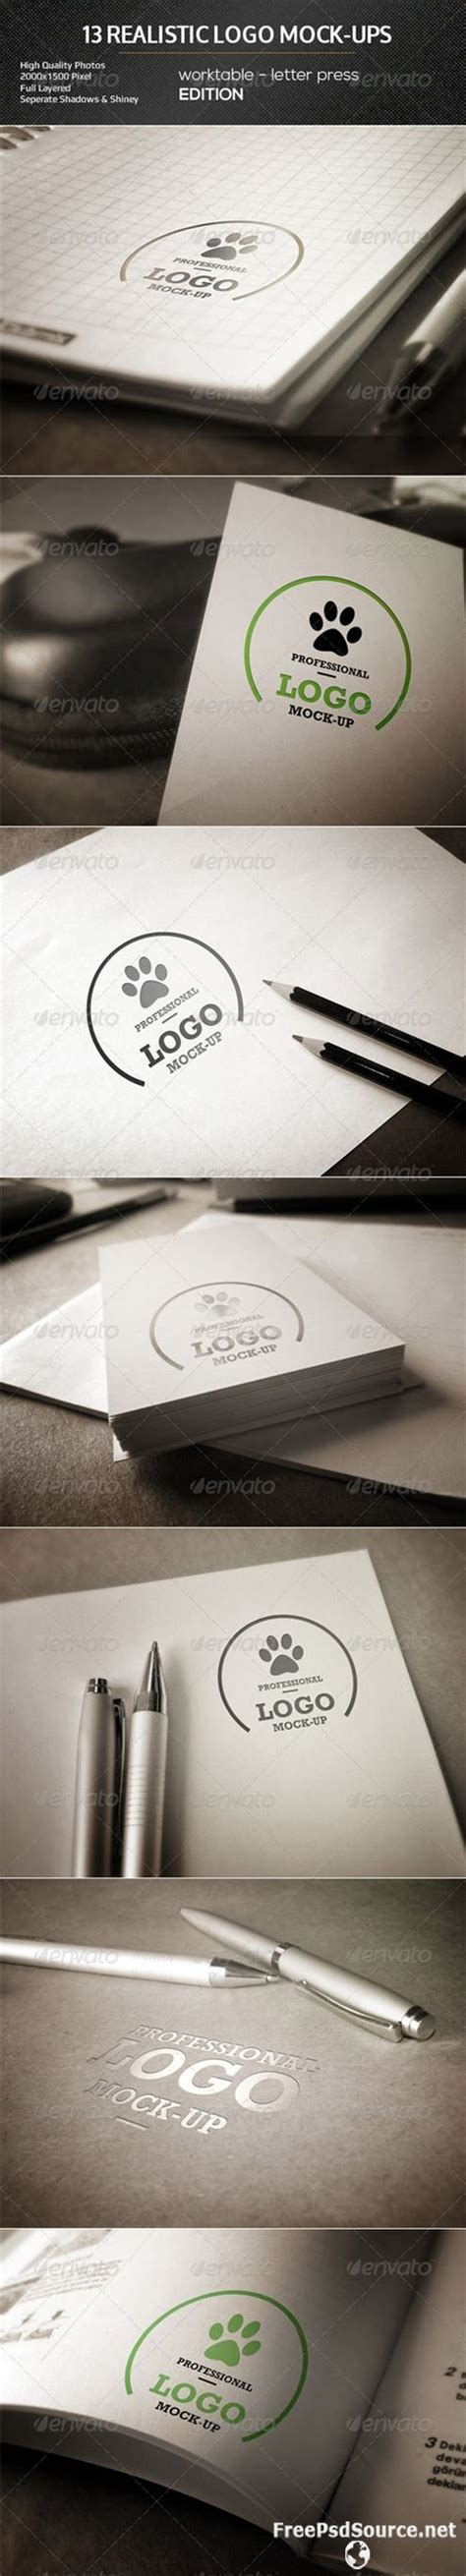 Bring your next project to life with thousands, easy to use creative product mockups. Download GraphicRiver Realistic Logo Mock-Ups Worktable ...